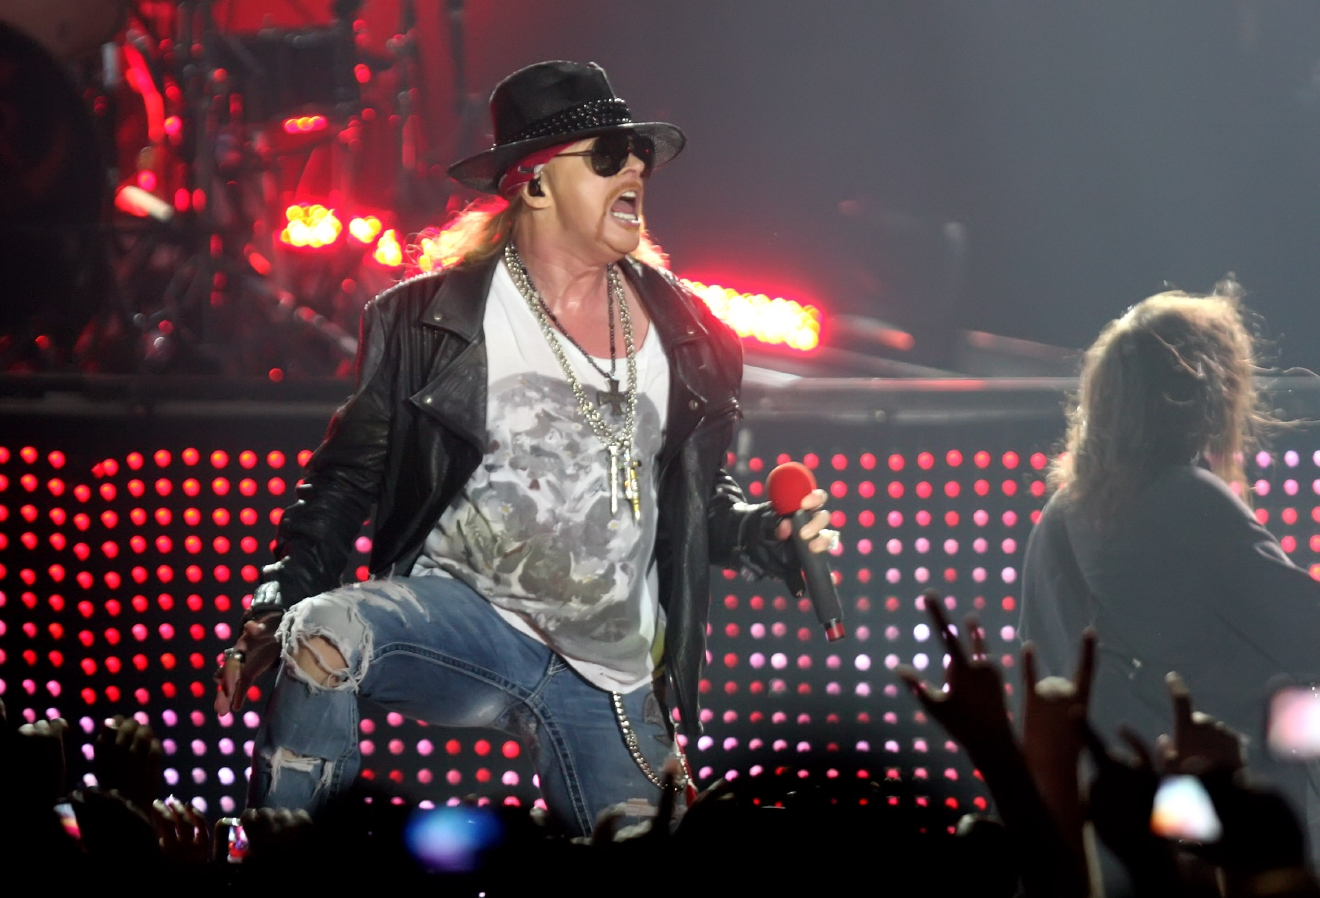 Axl Rose of Guns N Roses performing live in concert at the Spaladium Arena Split, Croatia - 17.07.12  Featuring: Axl Rose of Guns N Roses Where: UK, United States When: 17 Jul 2012 Credit: WENN  **Only available for publication in UK, USA, Germany, Austria, Switzerland**